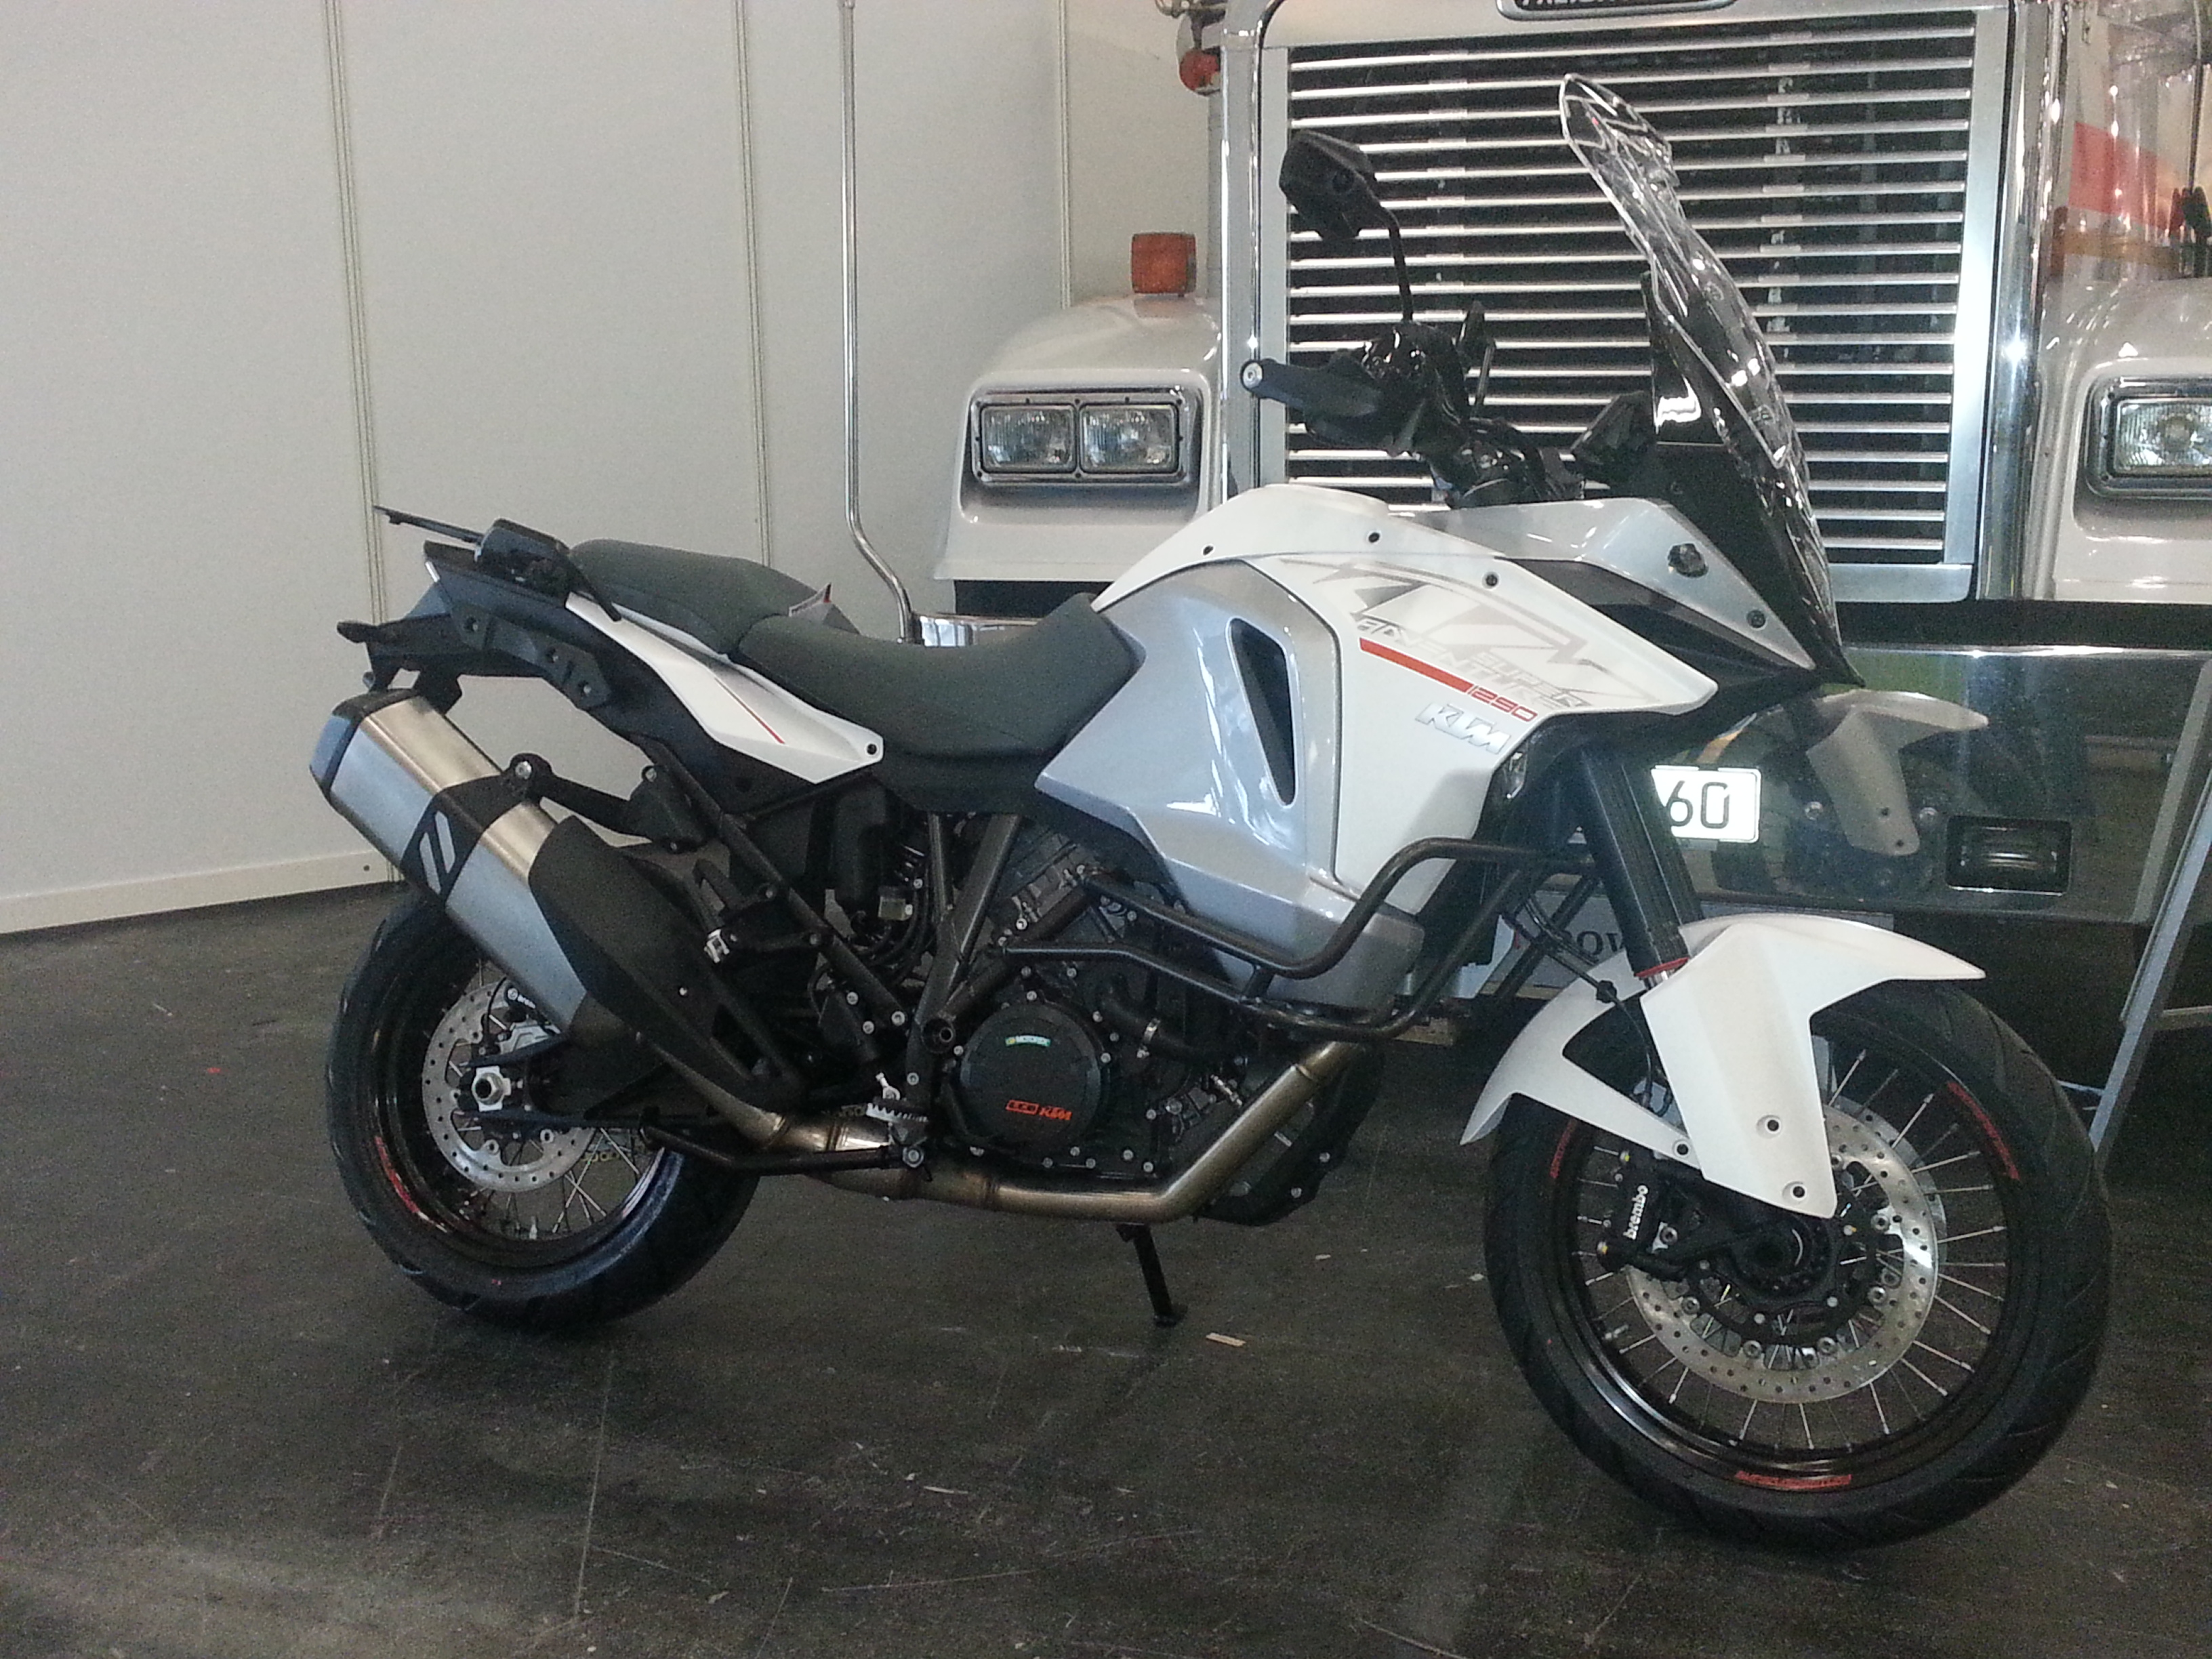 ktm 1290 super adventure - wikipedia